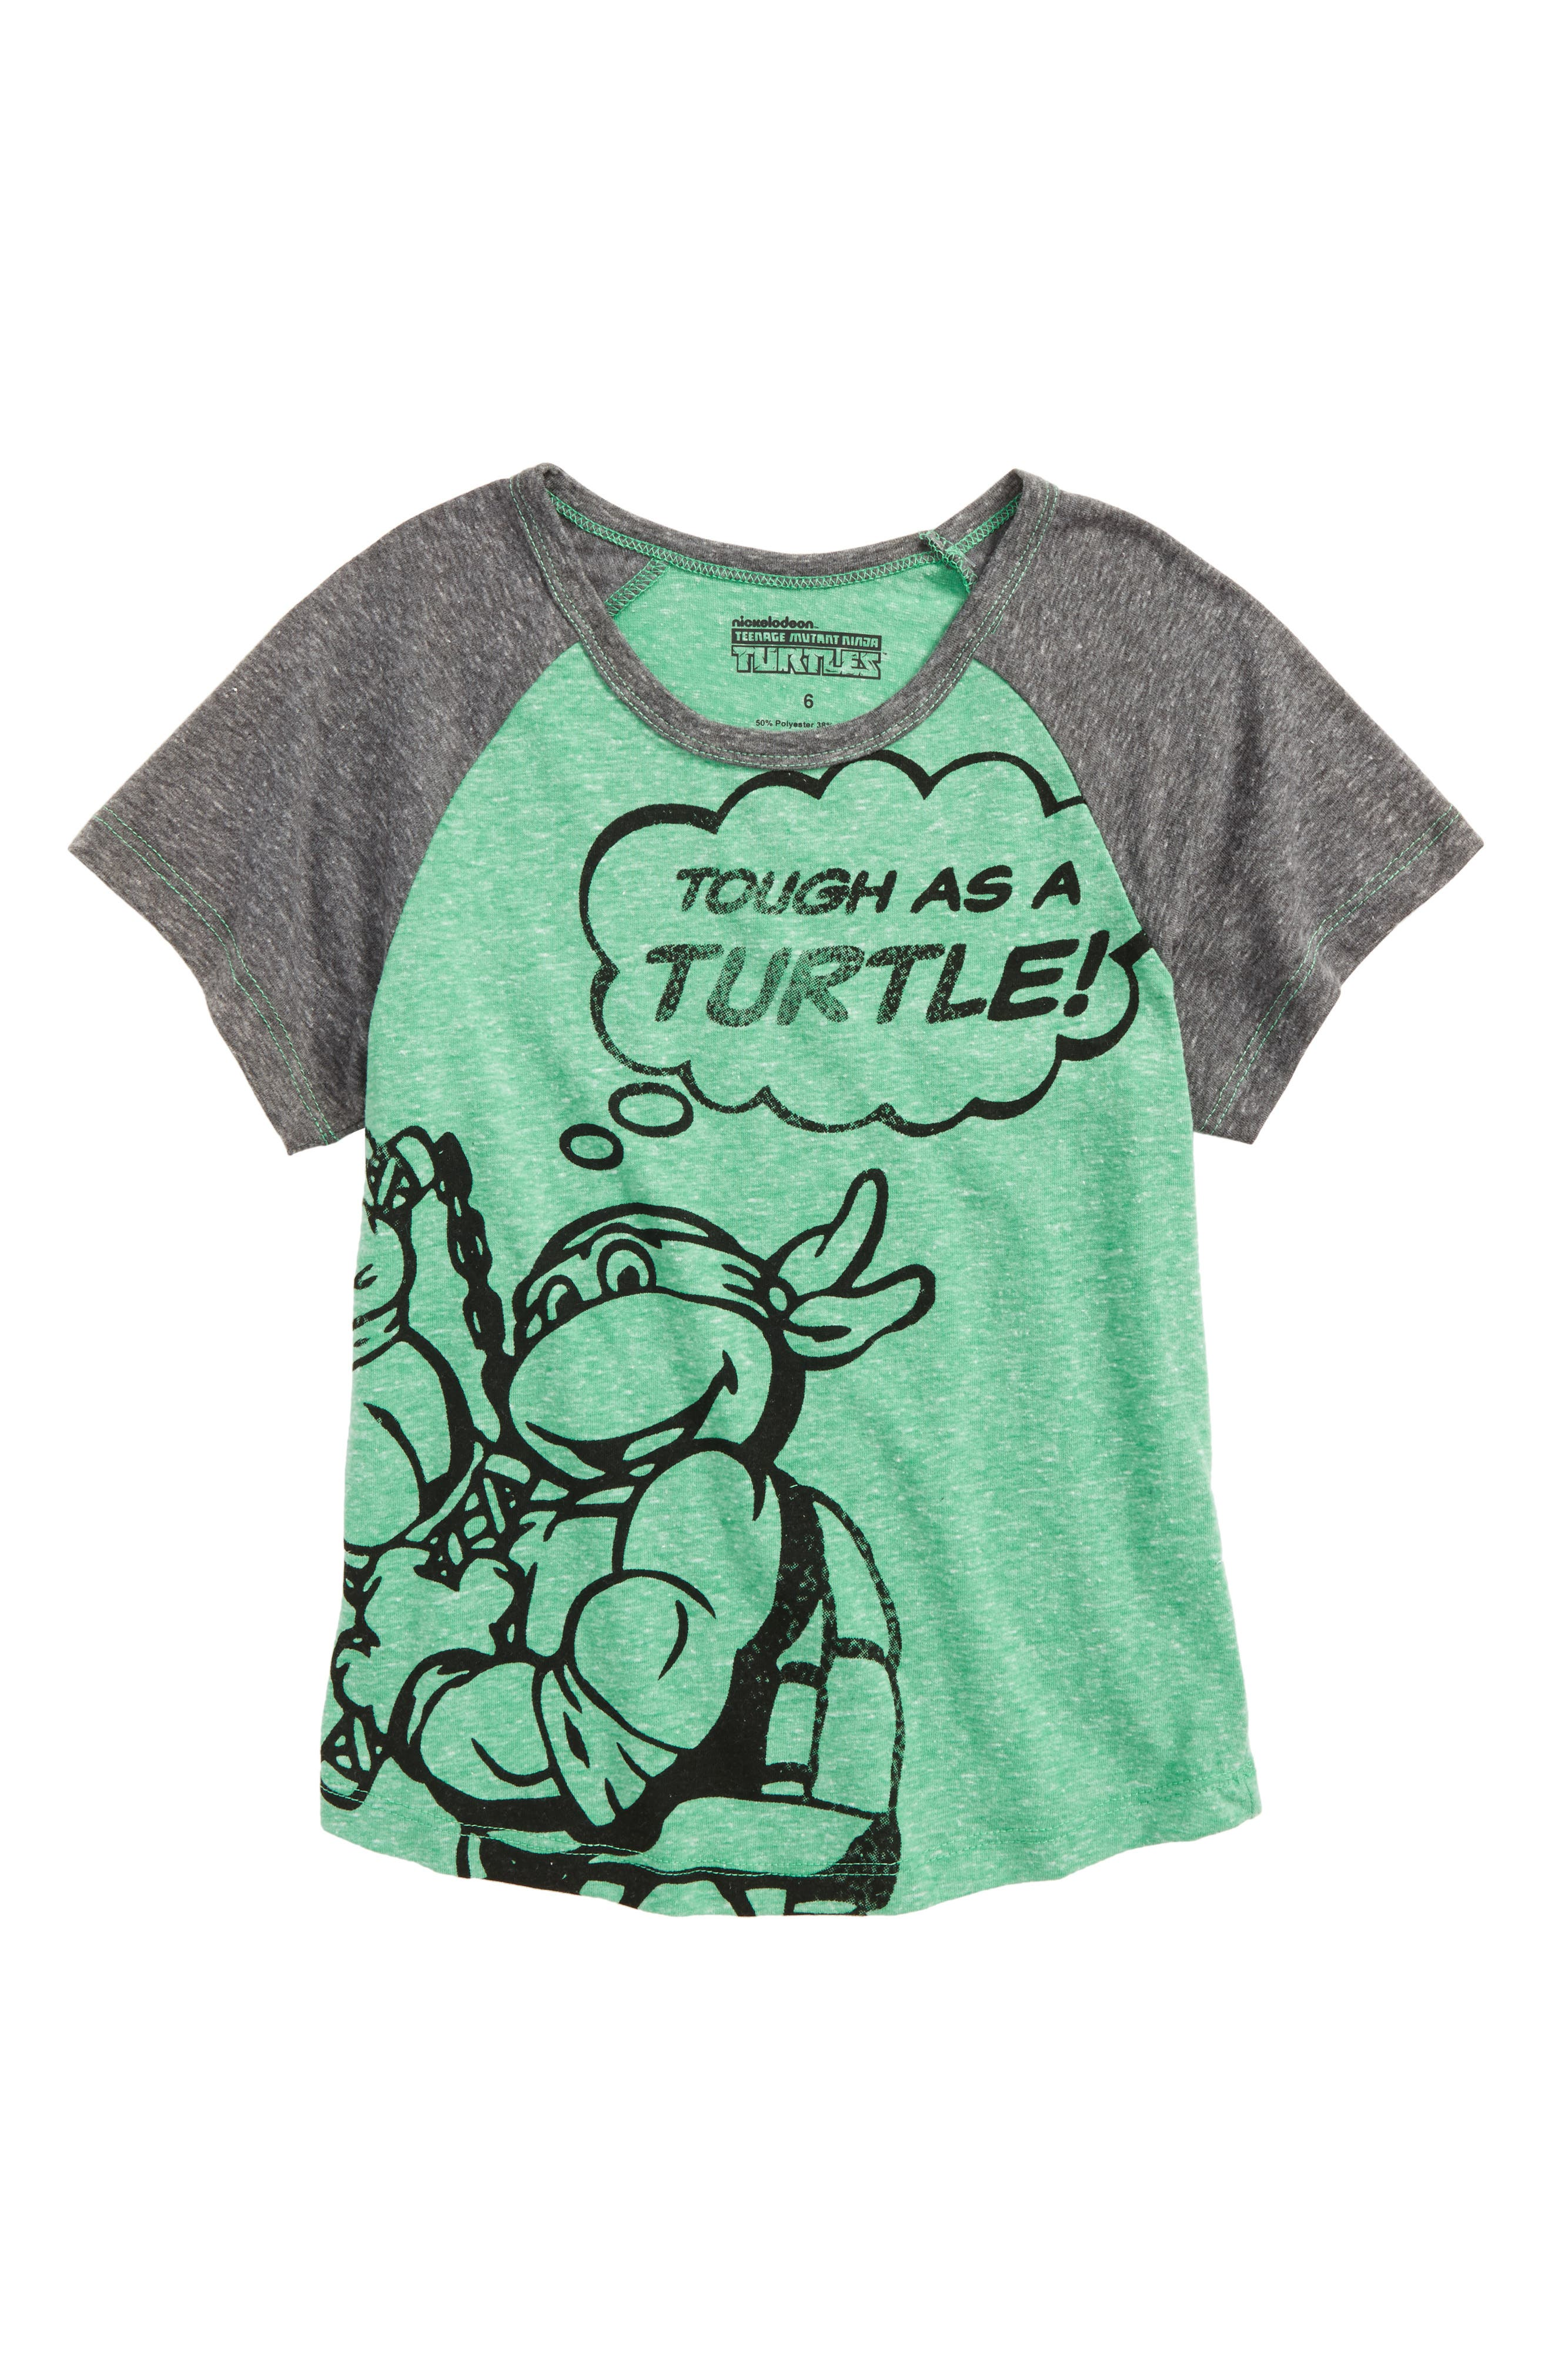 Main Image - Happy Threads TMNT - Tough as a Turtle Graphic T-Shirt (Toddler Boys & Little Boys)